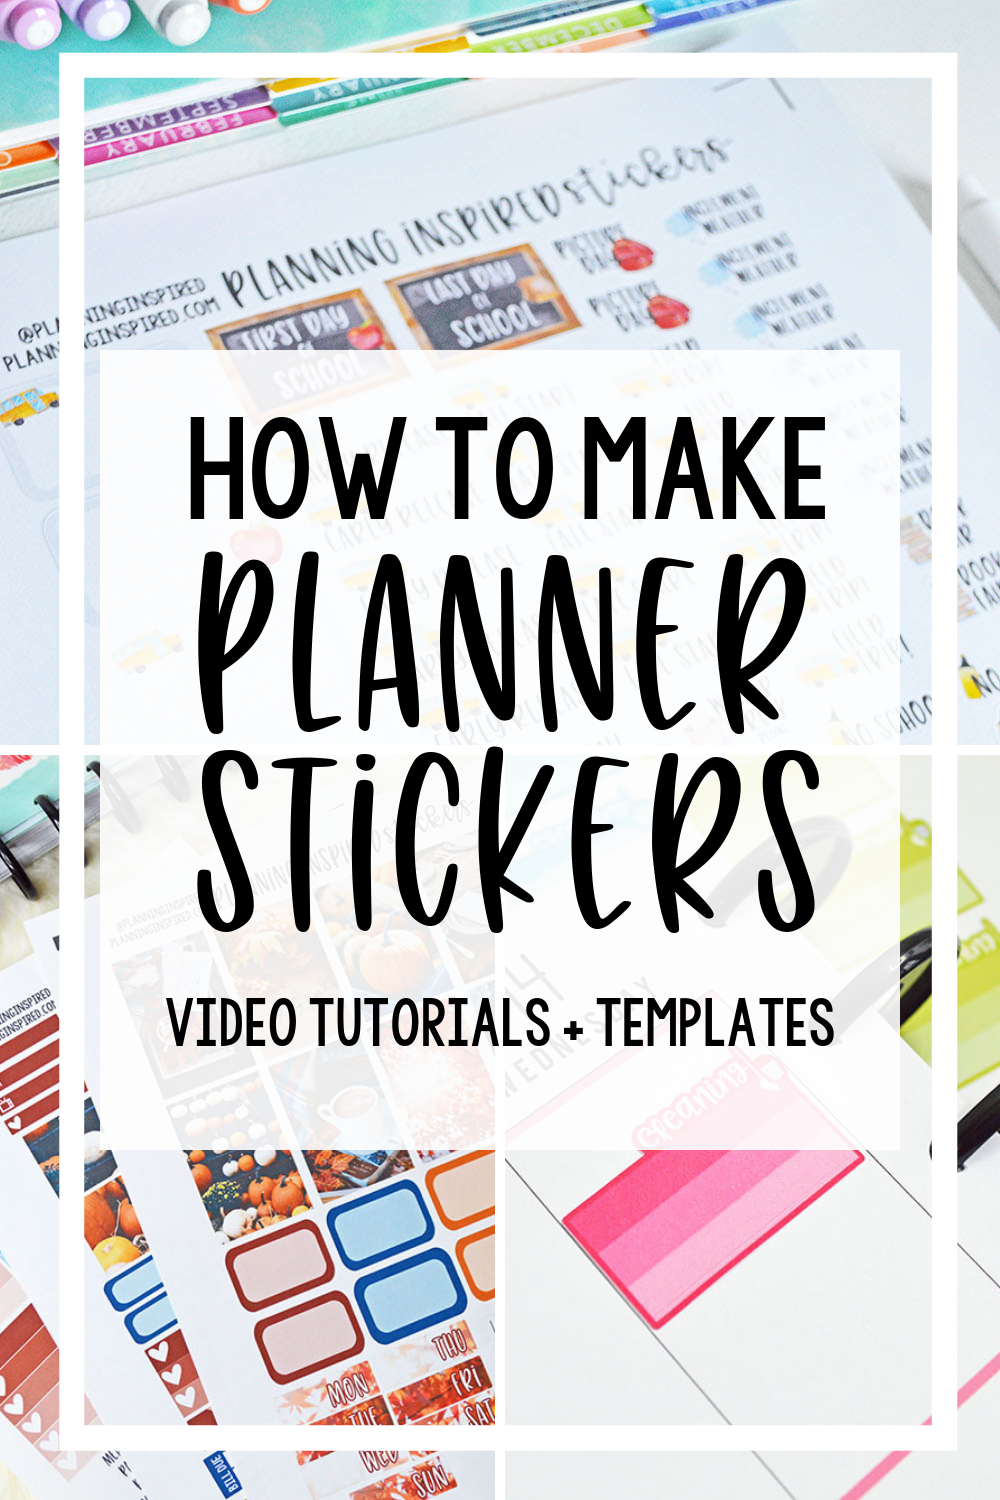 Learn how to make planner stickers using a silhouette machine including where to find fonts